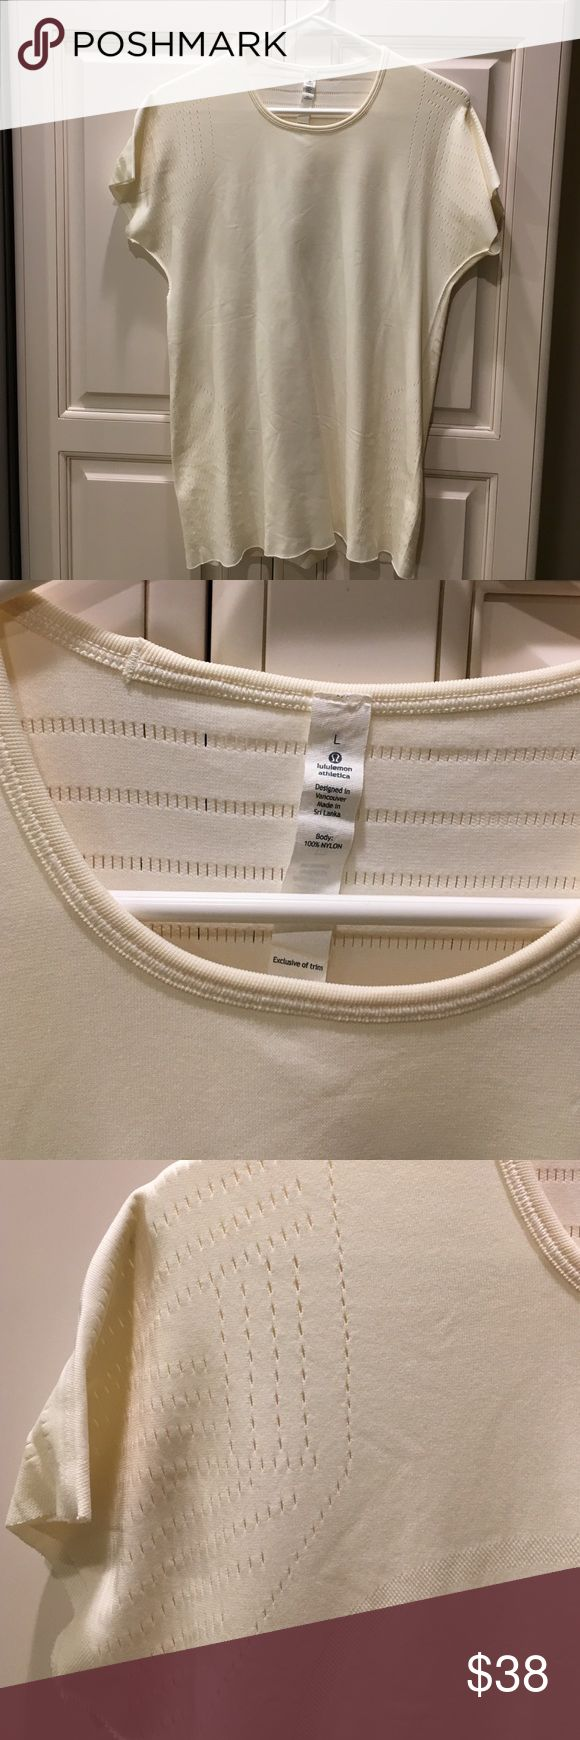 Lululemon cream short sleeve top Size large, 100% rayon. There is the Lululemon emblem in the print of the top in the front with laser cut detailing on the shoulders and back. Shoulder to shoulder is 16 inches, length sleeve is 6 inches, armpit to armpit is 18 1/2 inches in length is 27 inches. lululemon athletica Tops Tees - Short Sleeve